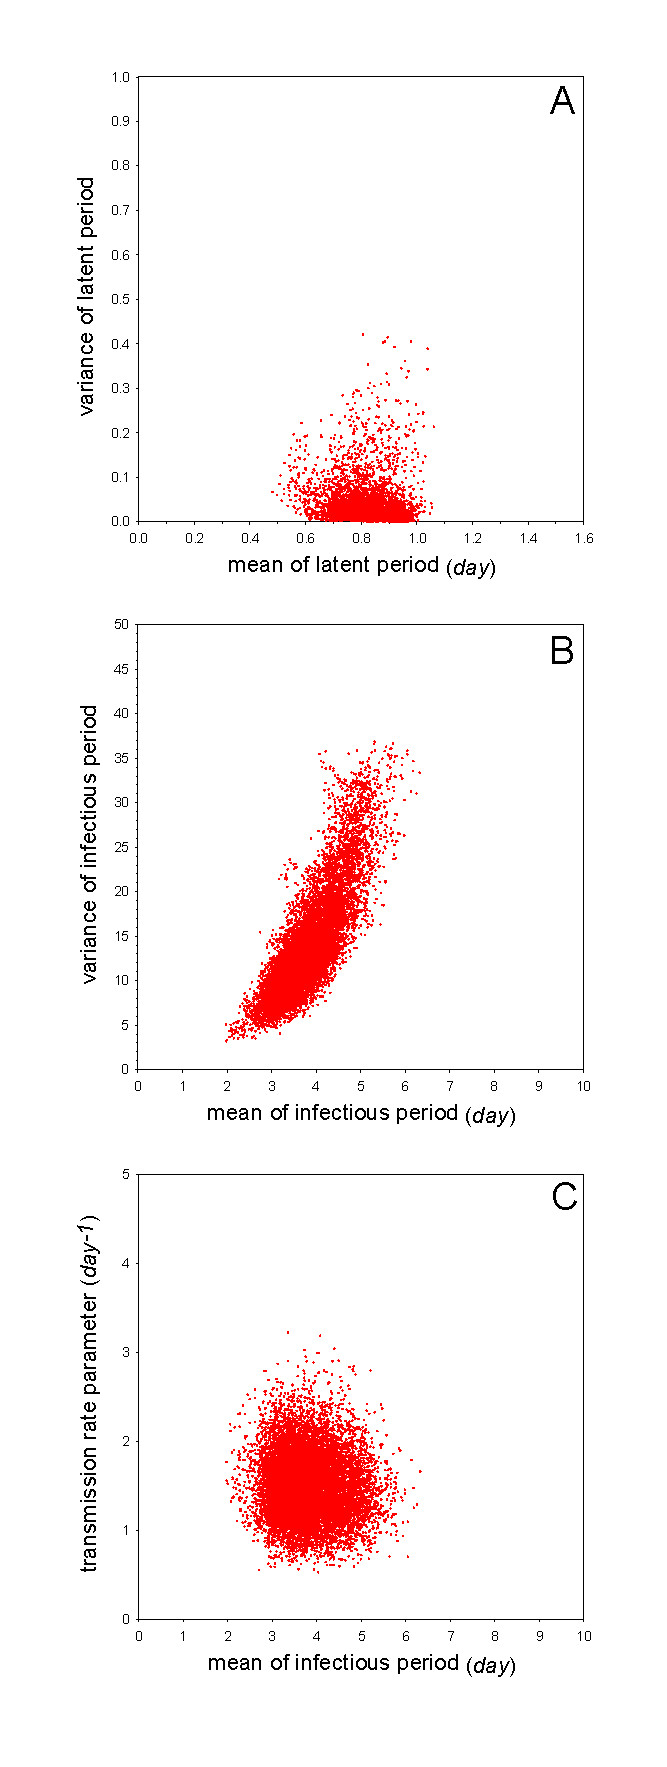 https://static-content.springer.com/image/art%3A10.1186%2F1297-9716-42-74/MediaObjects/13567_2010_Article_74_Fig3_HTML.jpg